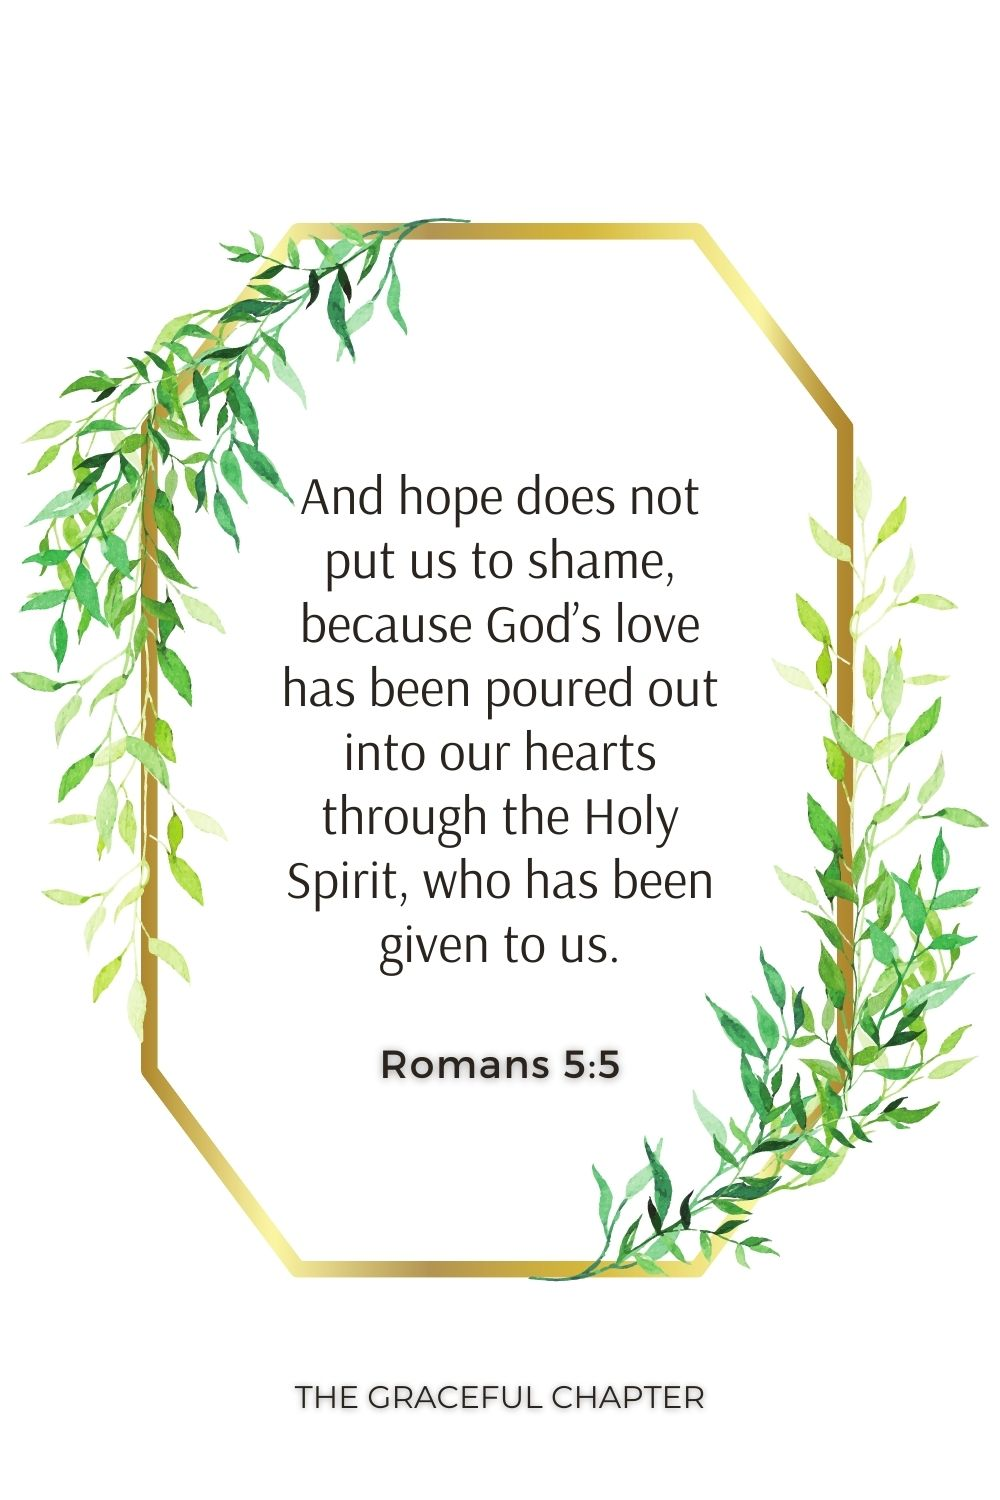 And hope does not put us to shame, because God's love has been poured out into our hearts through the Holy Spirit, who has been given to us. Romans 5:5